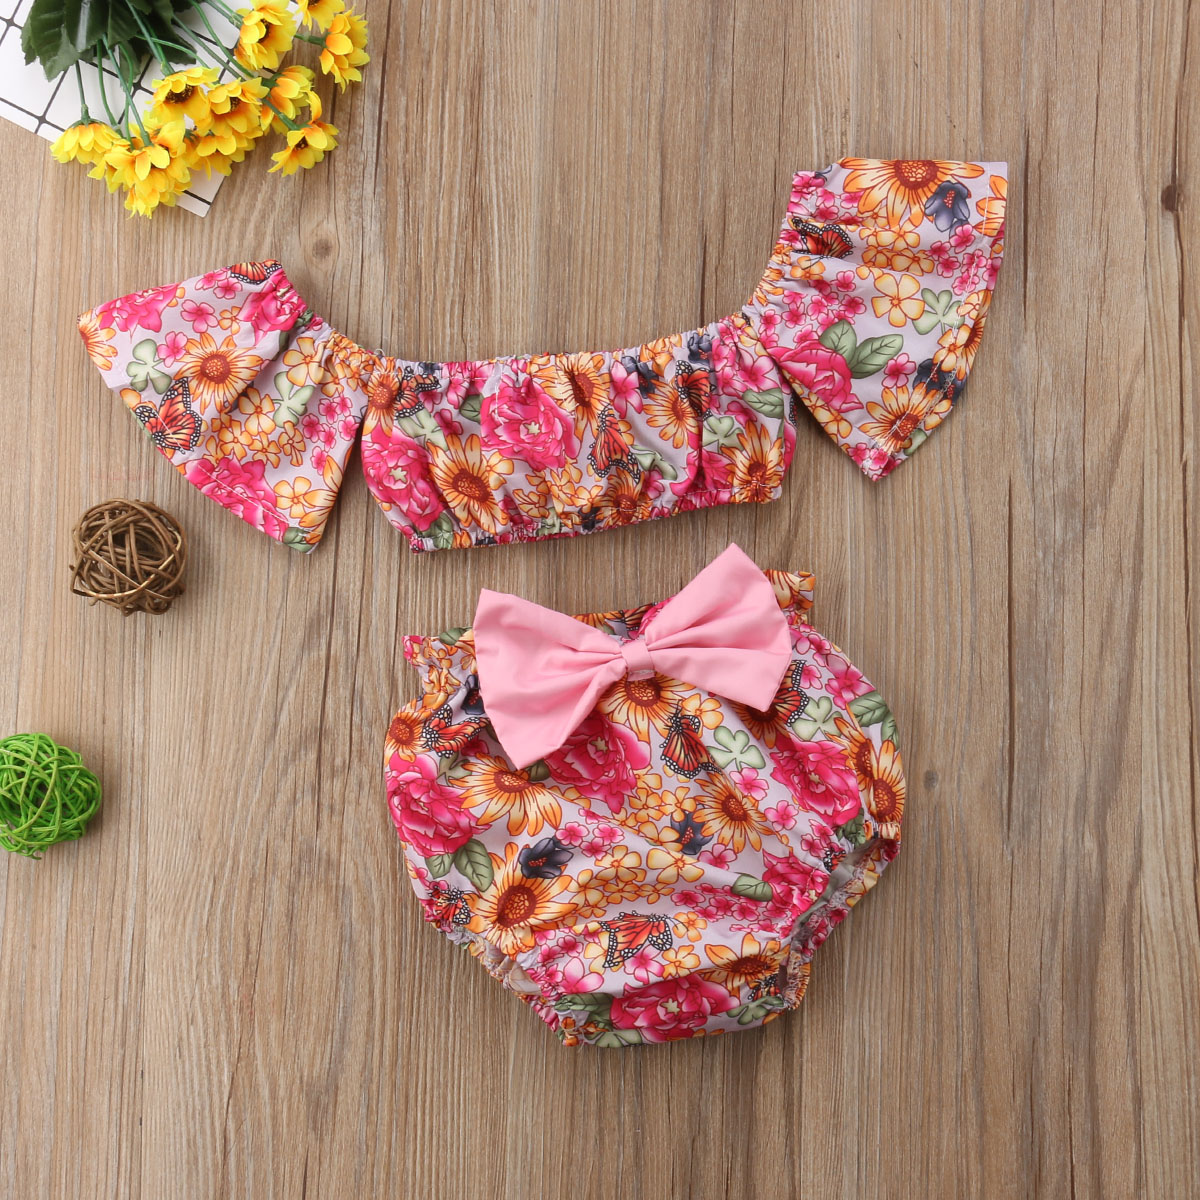 Pudcoco Newborn Infant Baby Girl Clothing Set Floral off shoulder Tops T-shirt+Bowknot shorts Outfit Flower Girls Clothes 0-24M